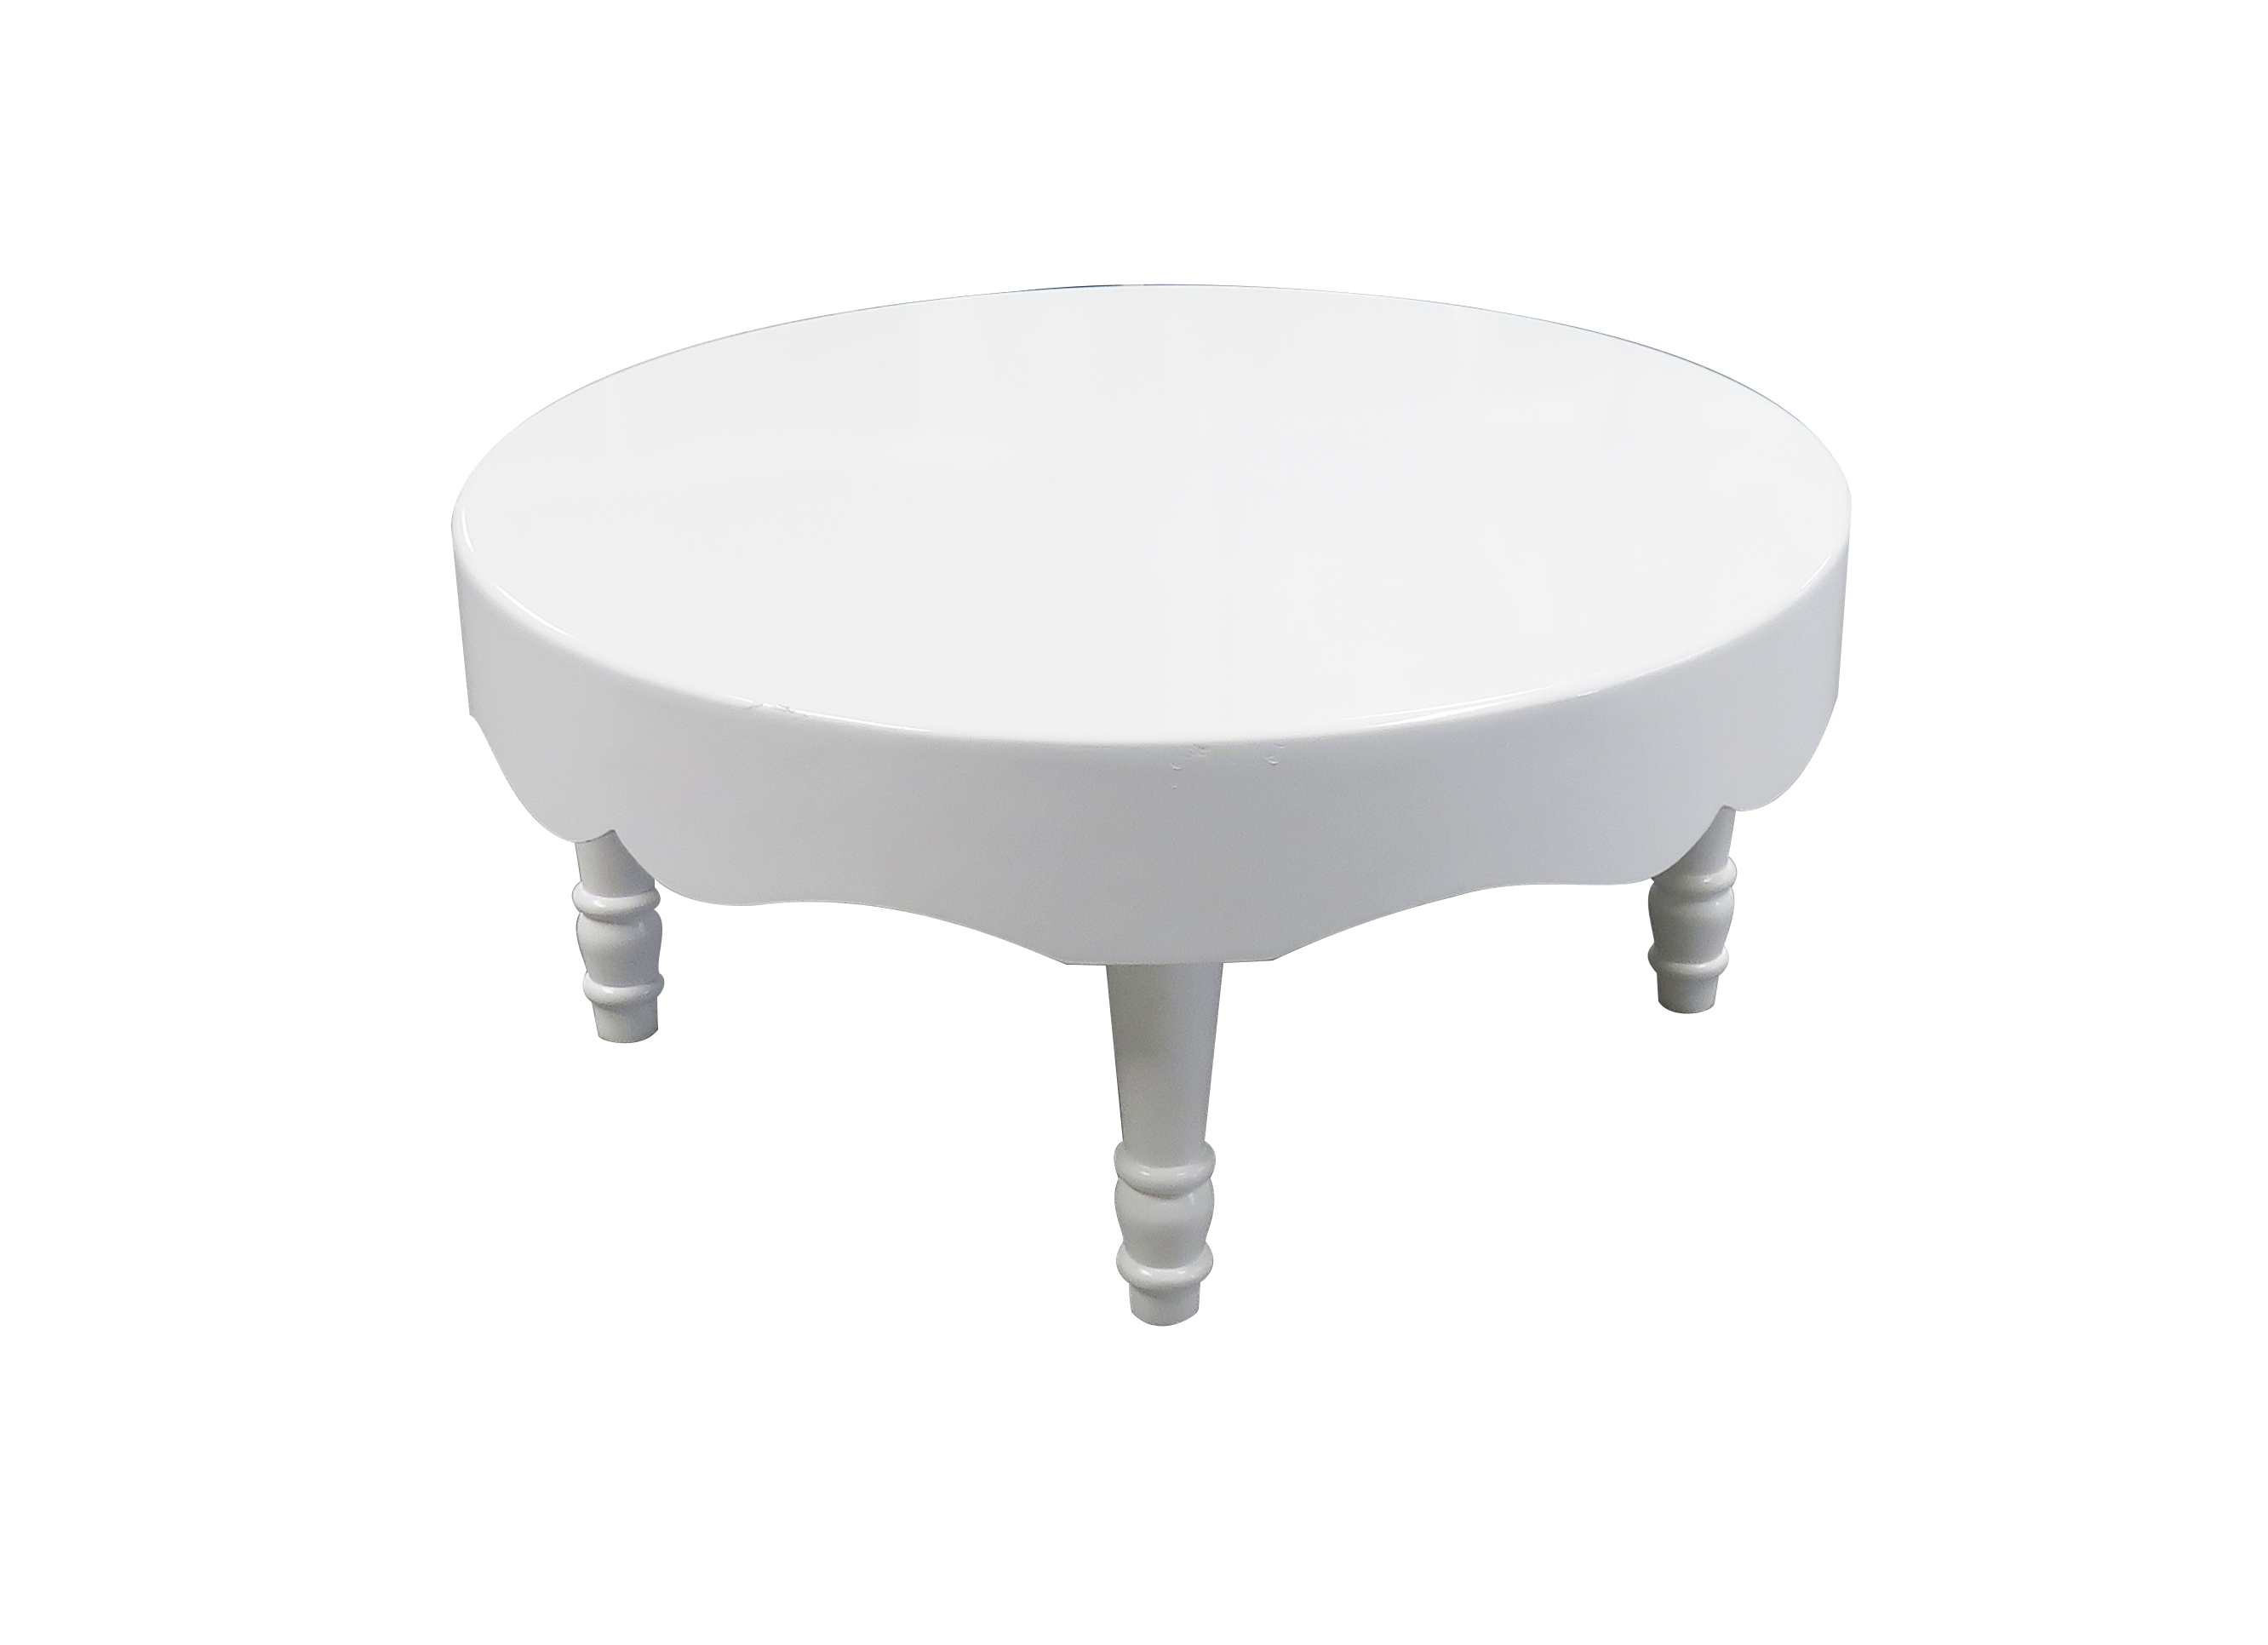 Rent Or Buy Avalon Chic Round White Coffee Table Event Rental Dubai Uae Areeka Event Rentals